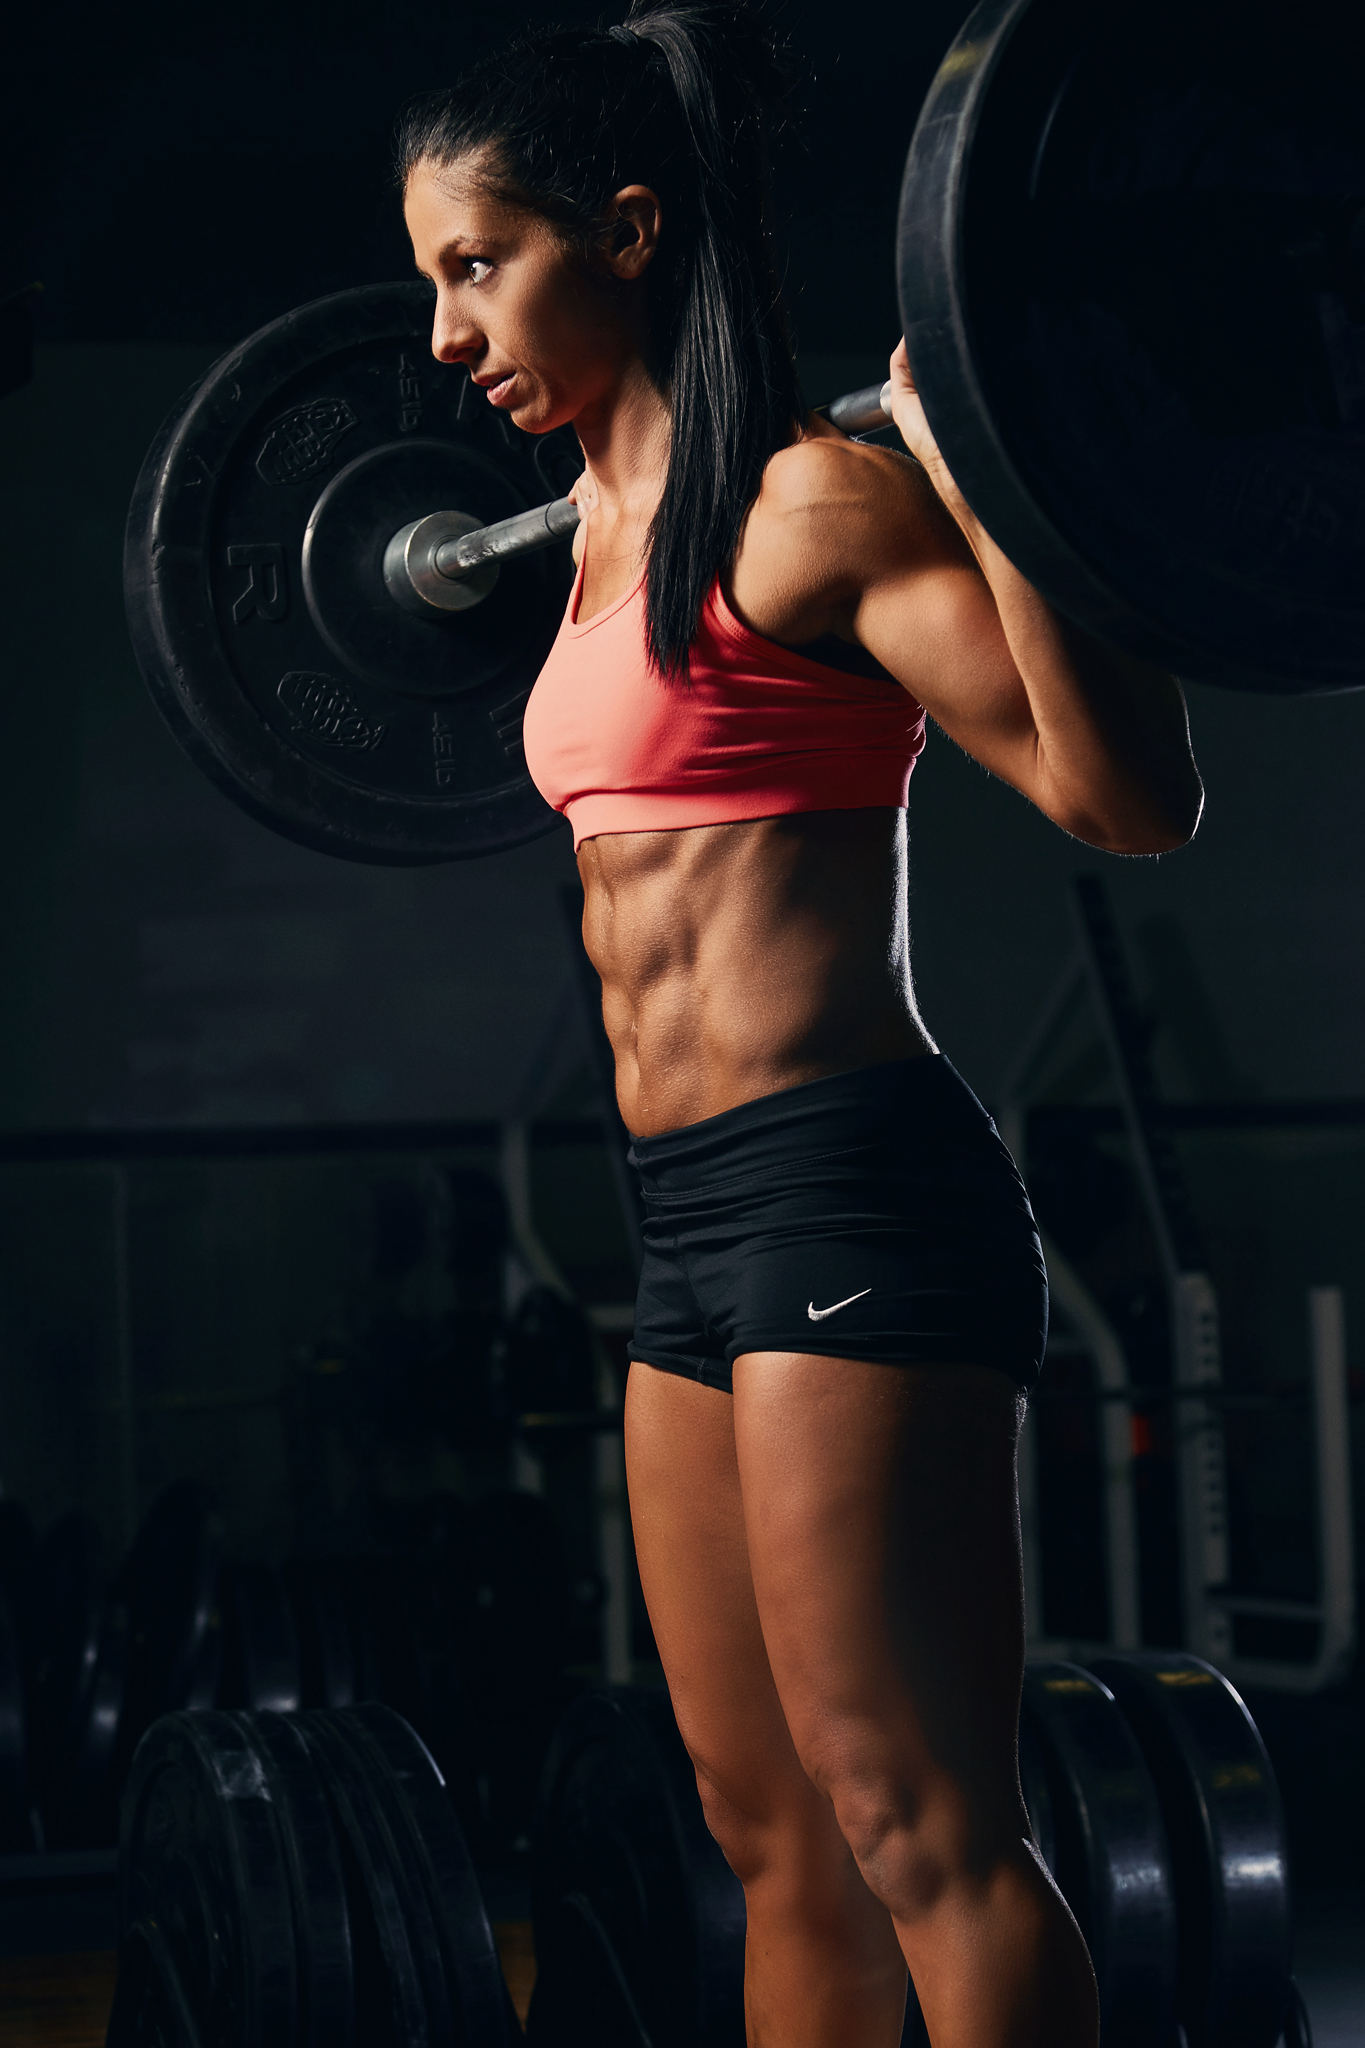 Fitness Competitor Photoshoot - squating - April Bleicher